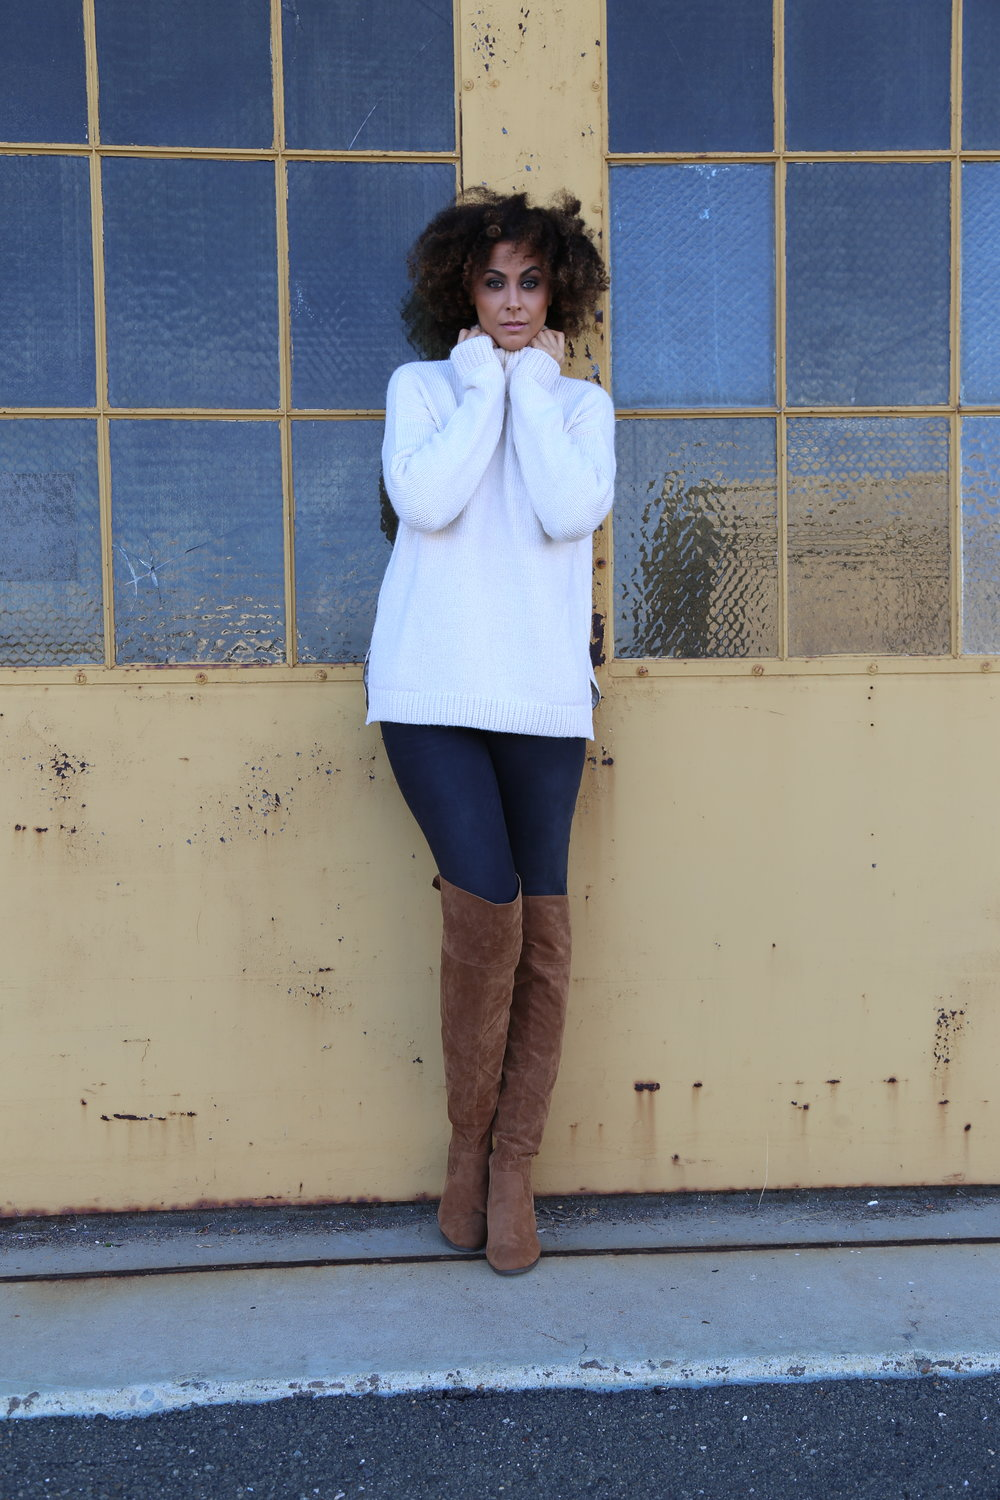 CURATD X LTS Heavy Turtle Neck Knit / CURATD X LTS 7/8 Raw Frayed Hem Jeans / LTS Lexie Over The Knee Boot  *All are from  Long Tall Sally   Photo Credit:  LaKeela Smith